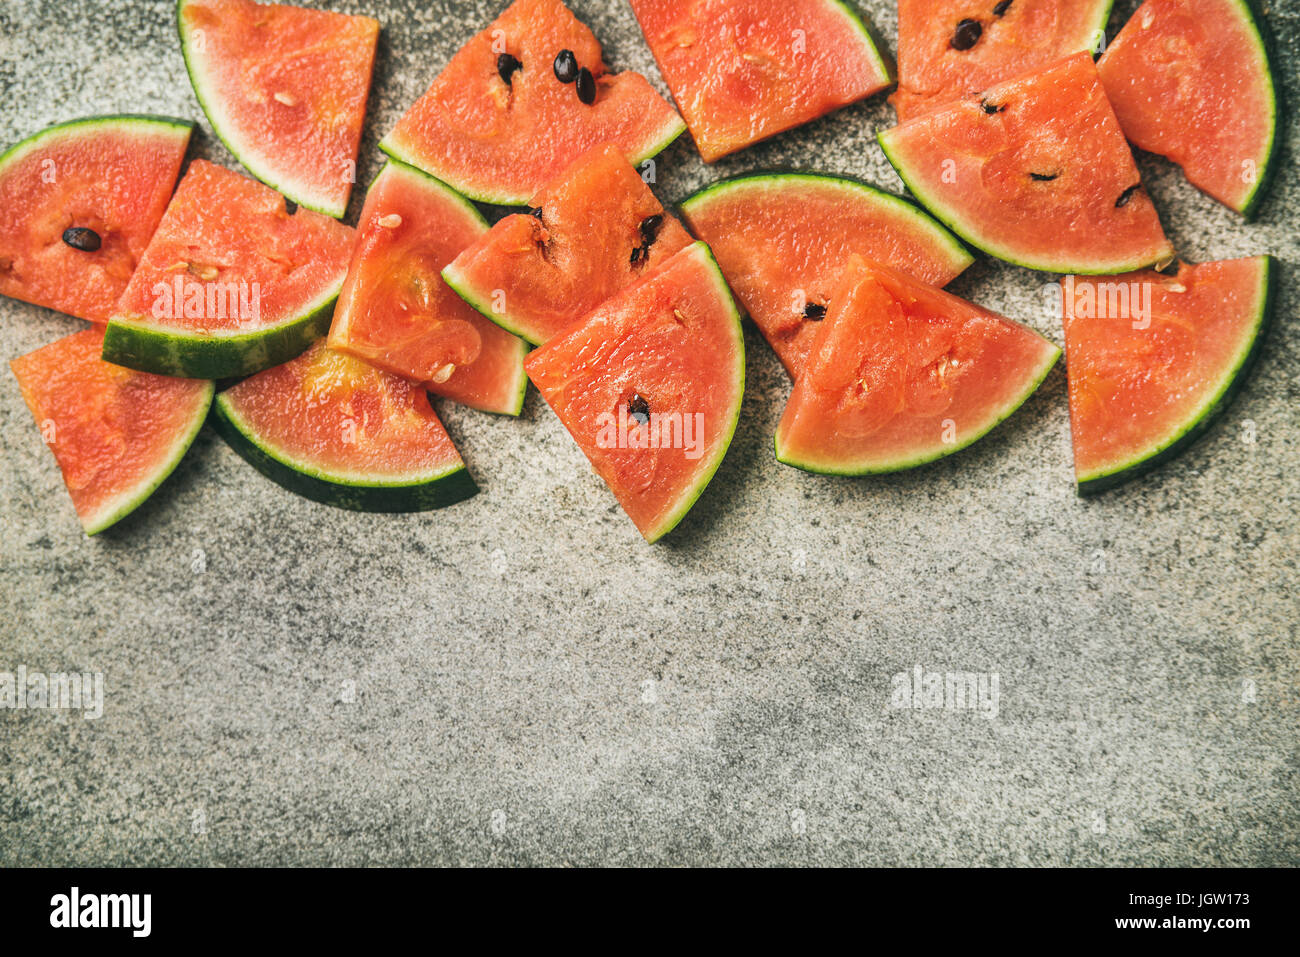 Juicy watermelon pieces over concrete stone background - Stock Image